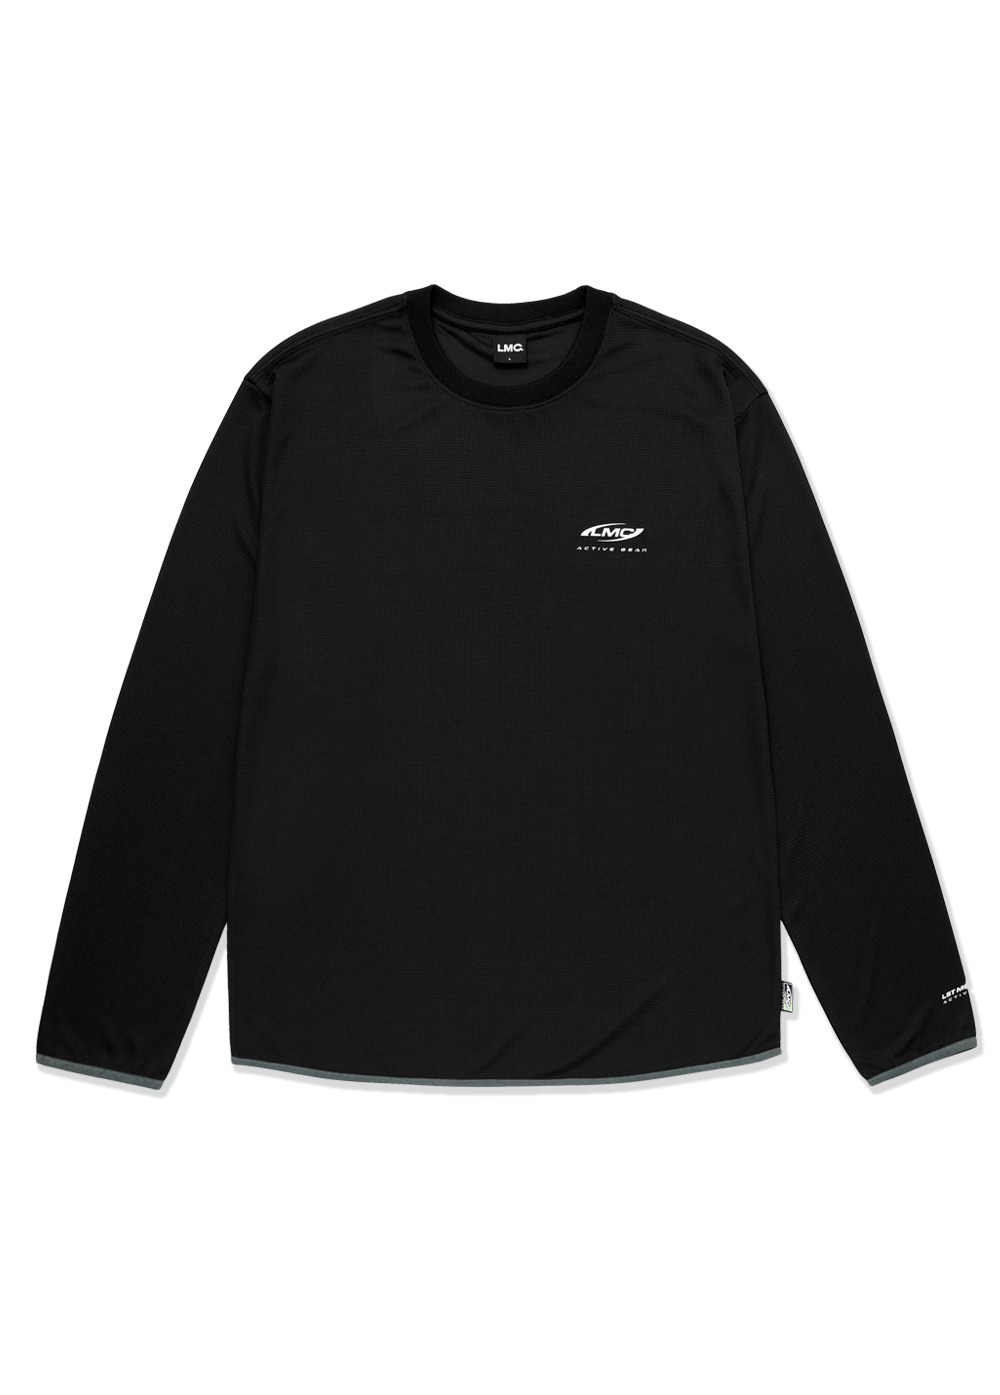 LMC ATB-UV+ ACTIVE GEAR LONG SLV JERSEY black